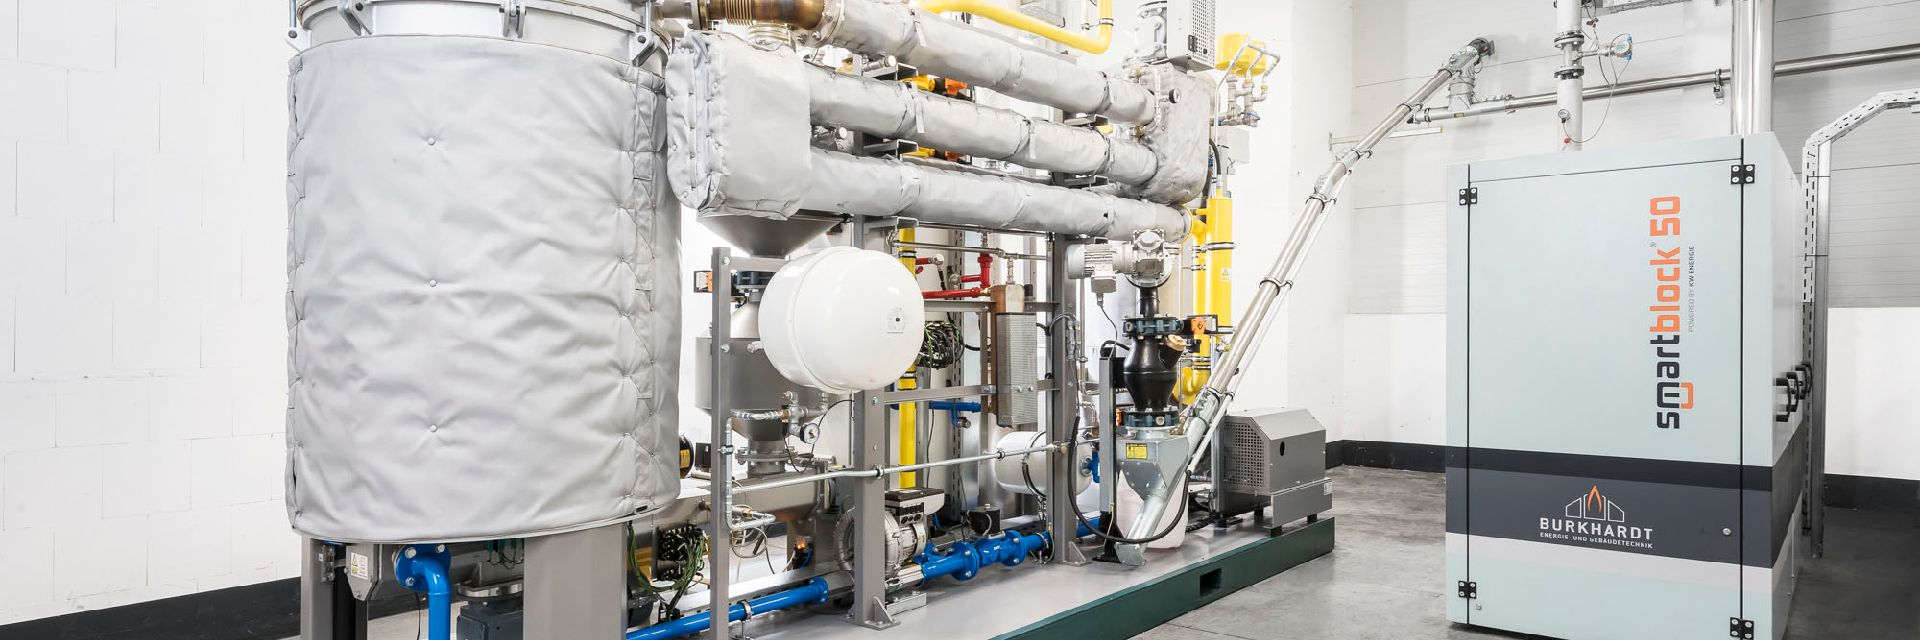 Wood Gas Generator >> Cogeneration With Burkhardt Wood Gasifier And Chp Plants